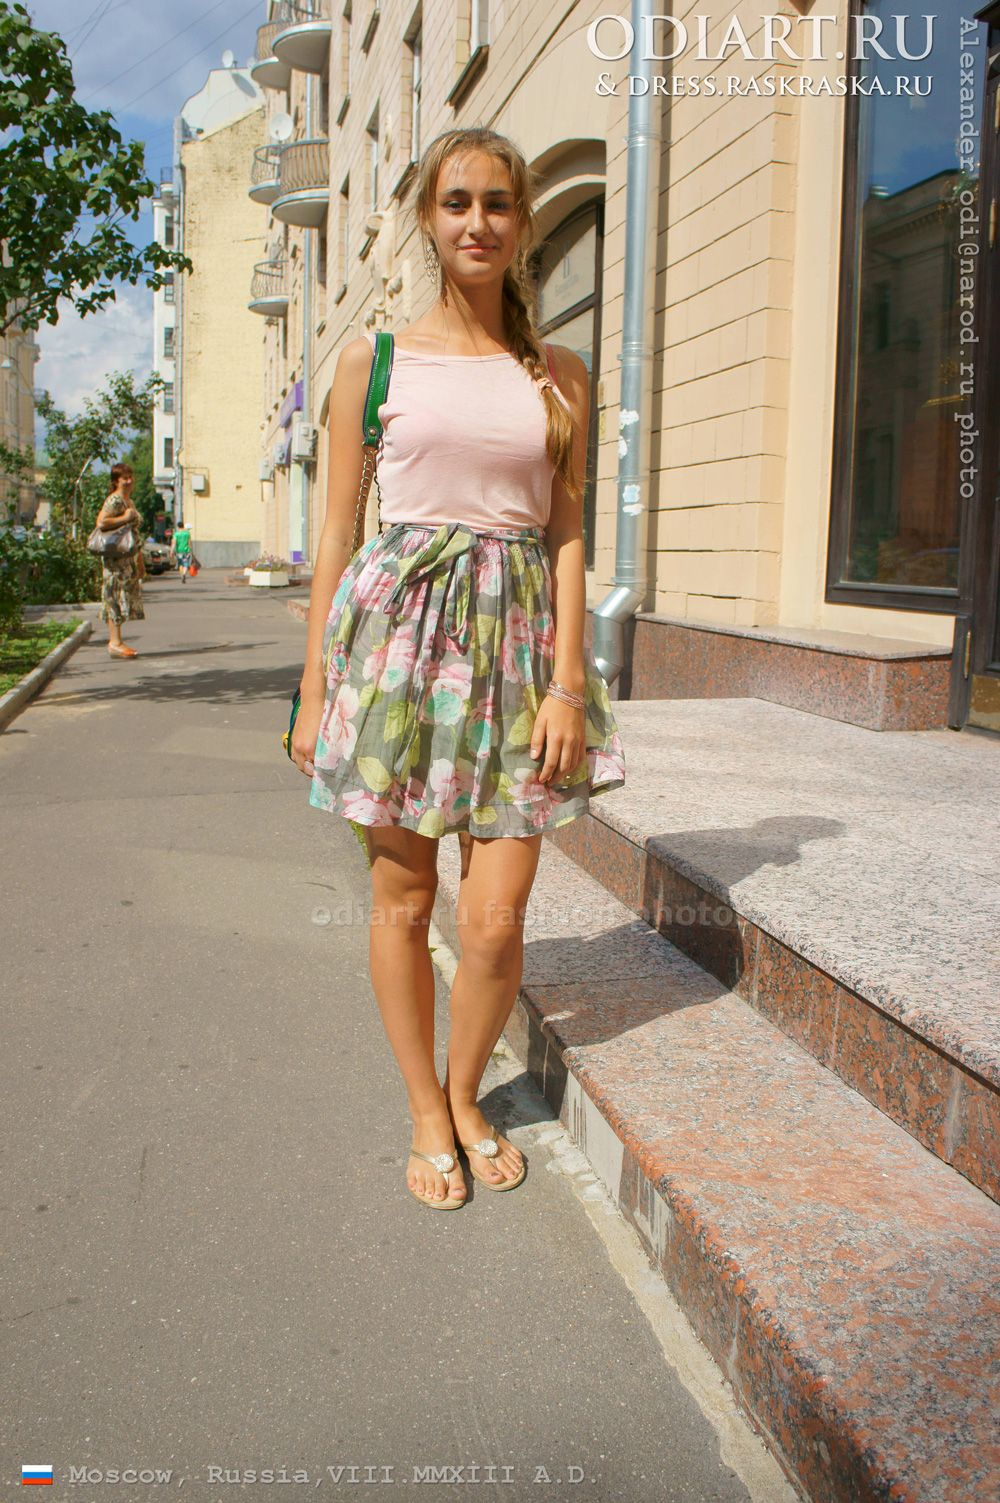 Russian Beauty With A Pigtail Rose Sleeveless Shirt And Summer Skirt Moscow Street Fashion